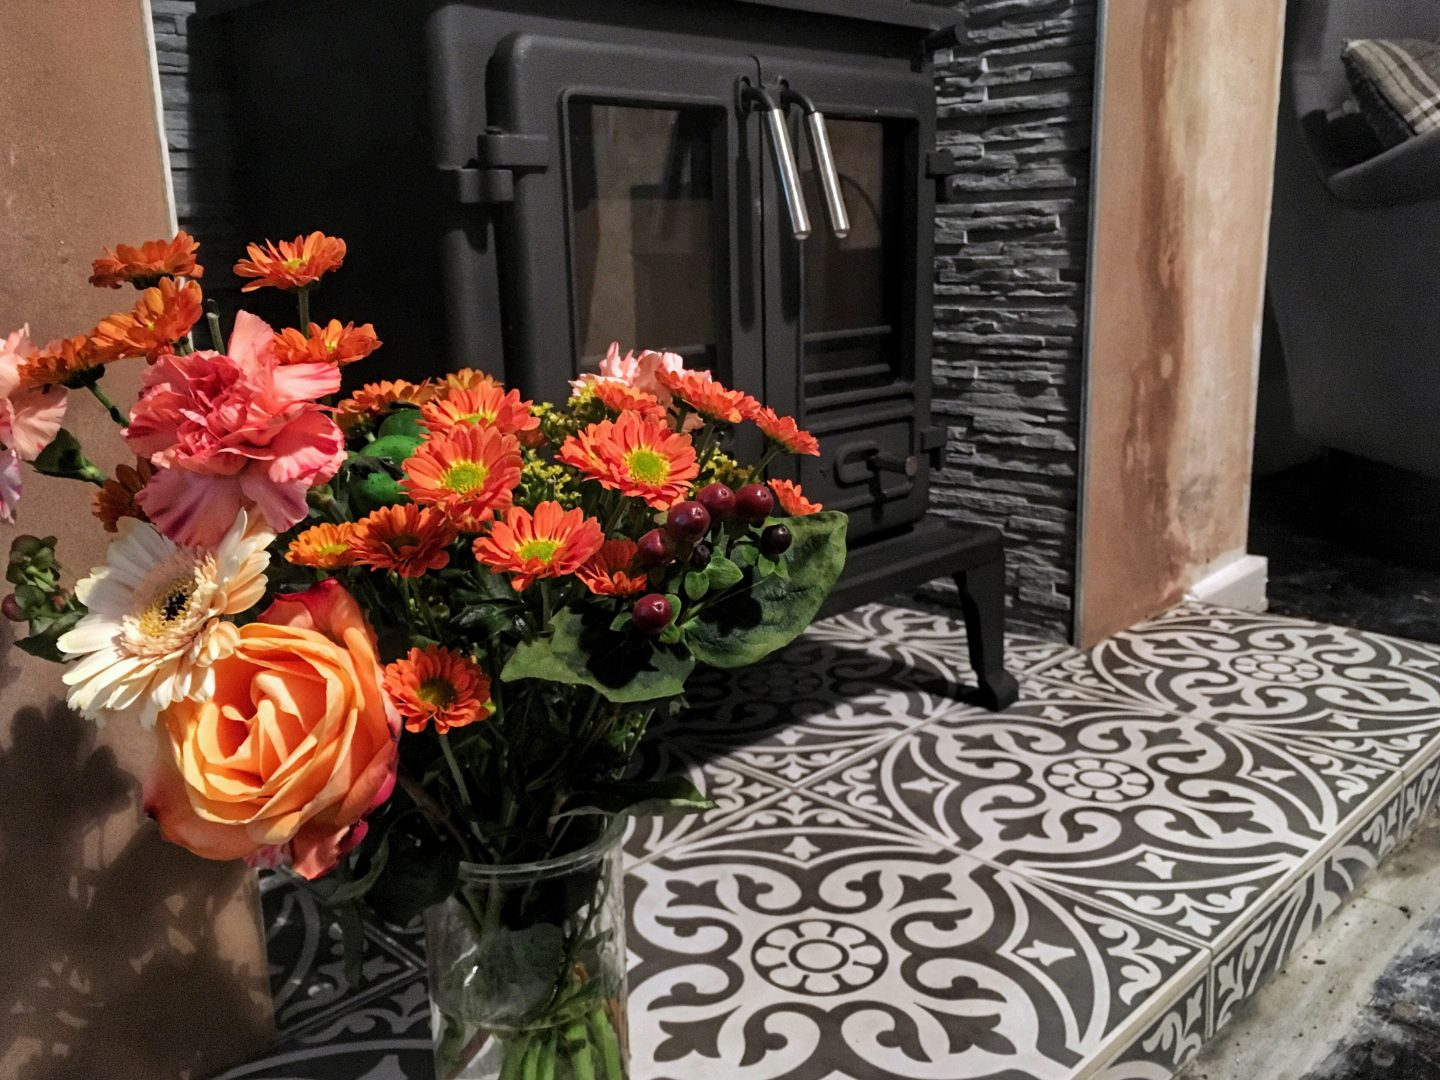 fireplace tons of tiles hearth patterned autumnal flowers